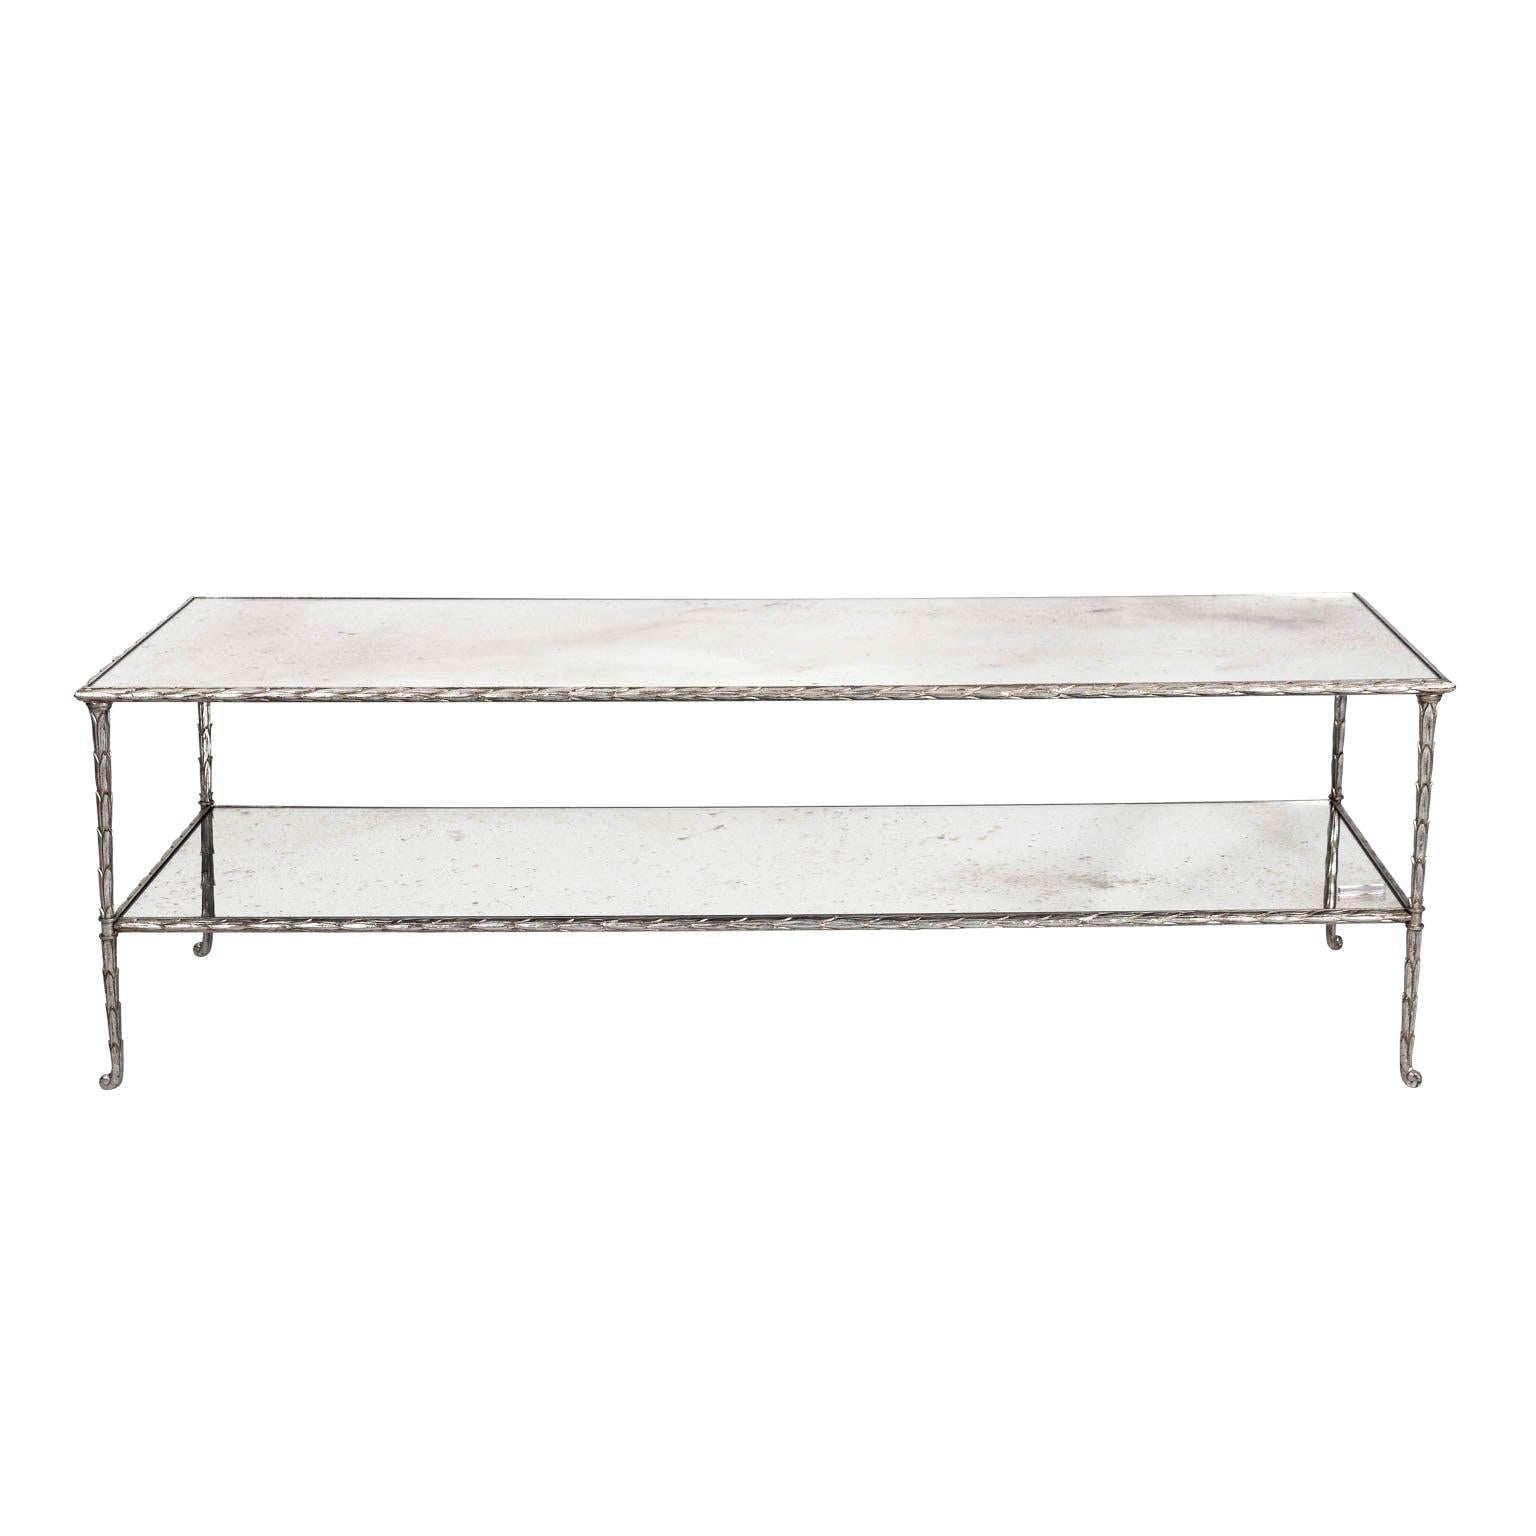 Two Tier Coffee Table With Glass Top For Sale At 1stdibs